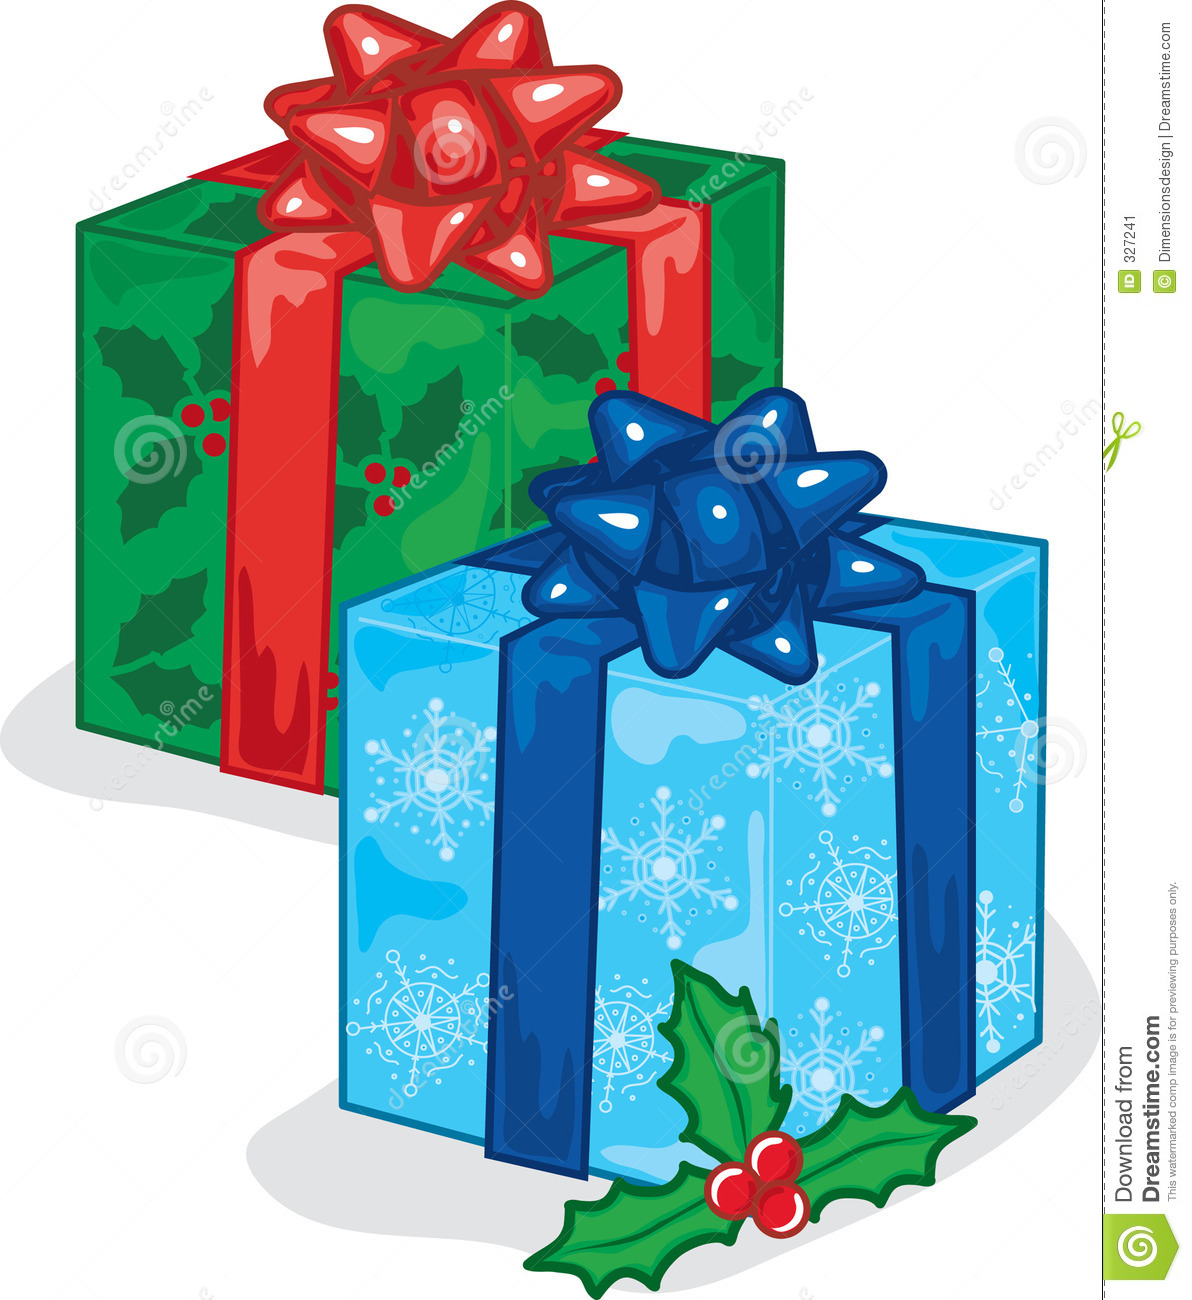 Color vibrant illustration of beautifully wrapped christmas presents